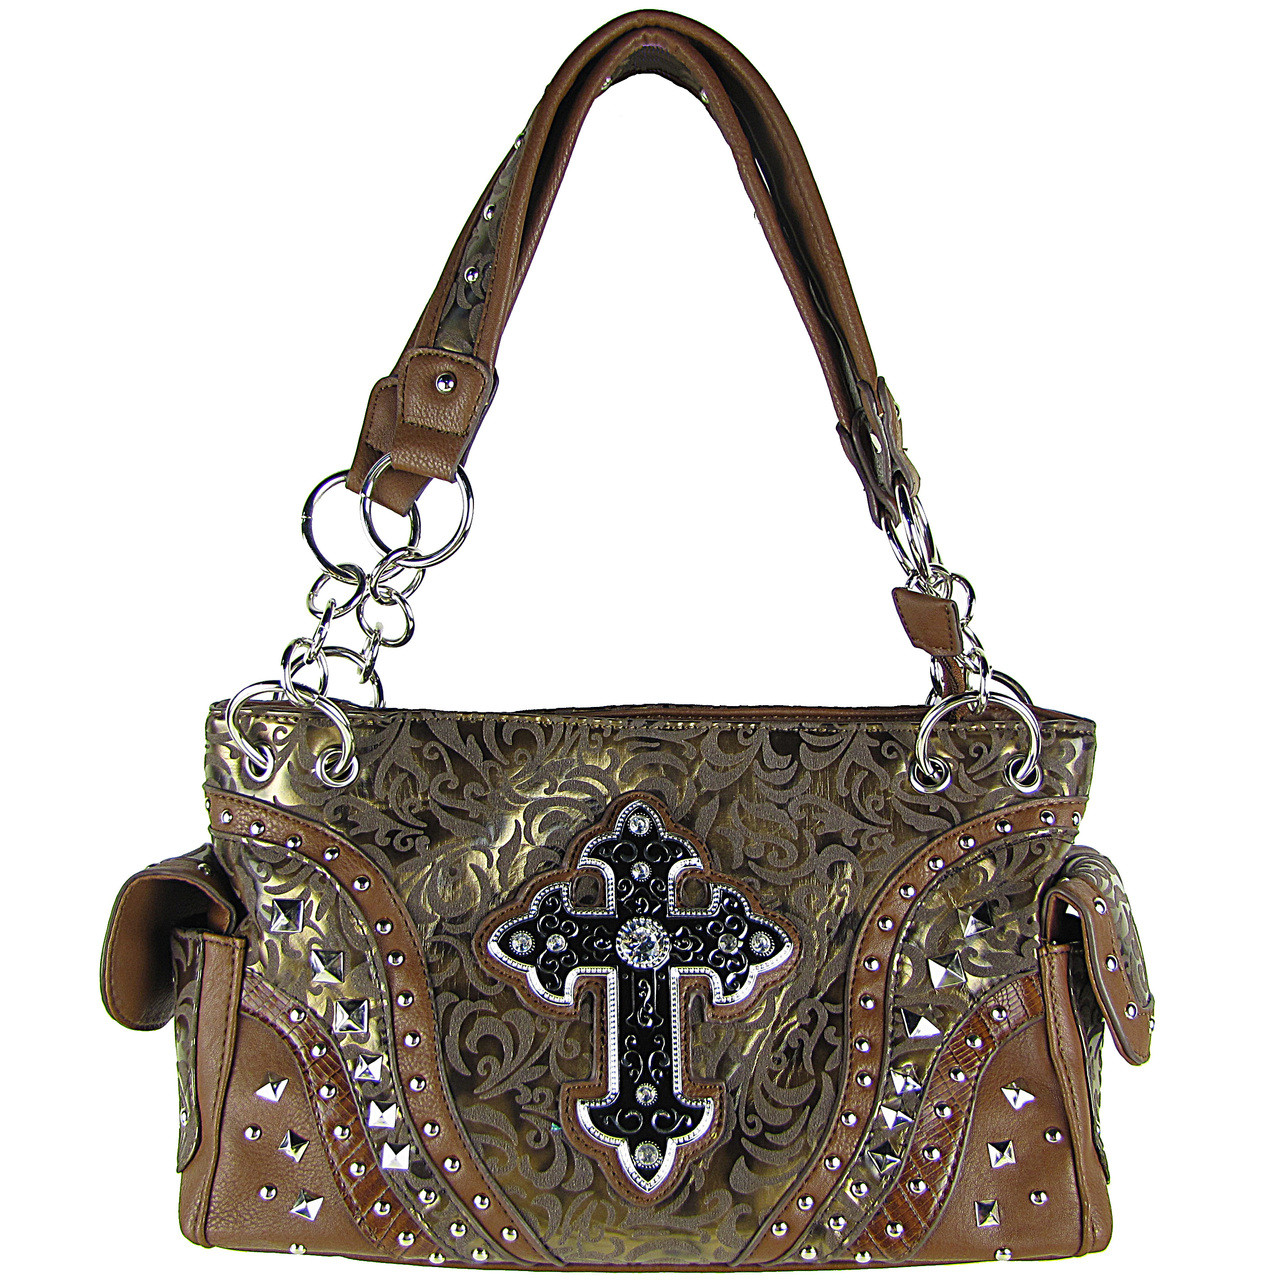 BROWN METALLIC PAISLEY STUDDED RHINESTONE CROSS LOOK SHOULDER HANDBAG HB1-90LCRBRN